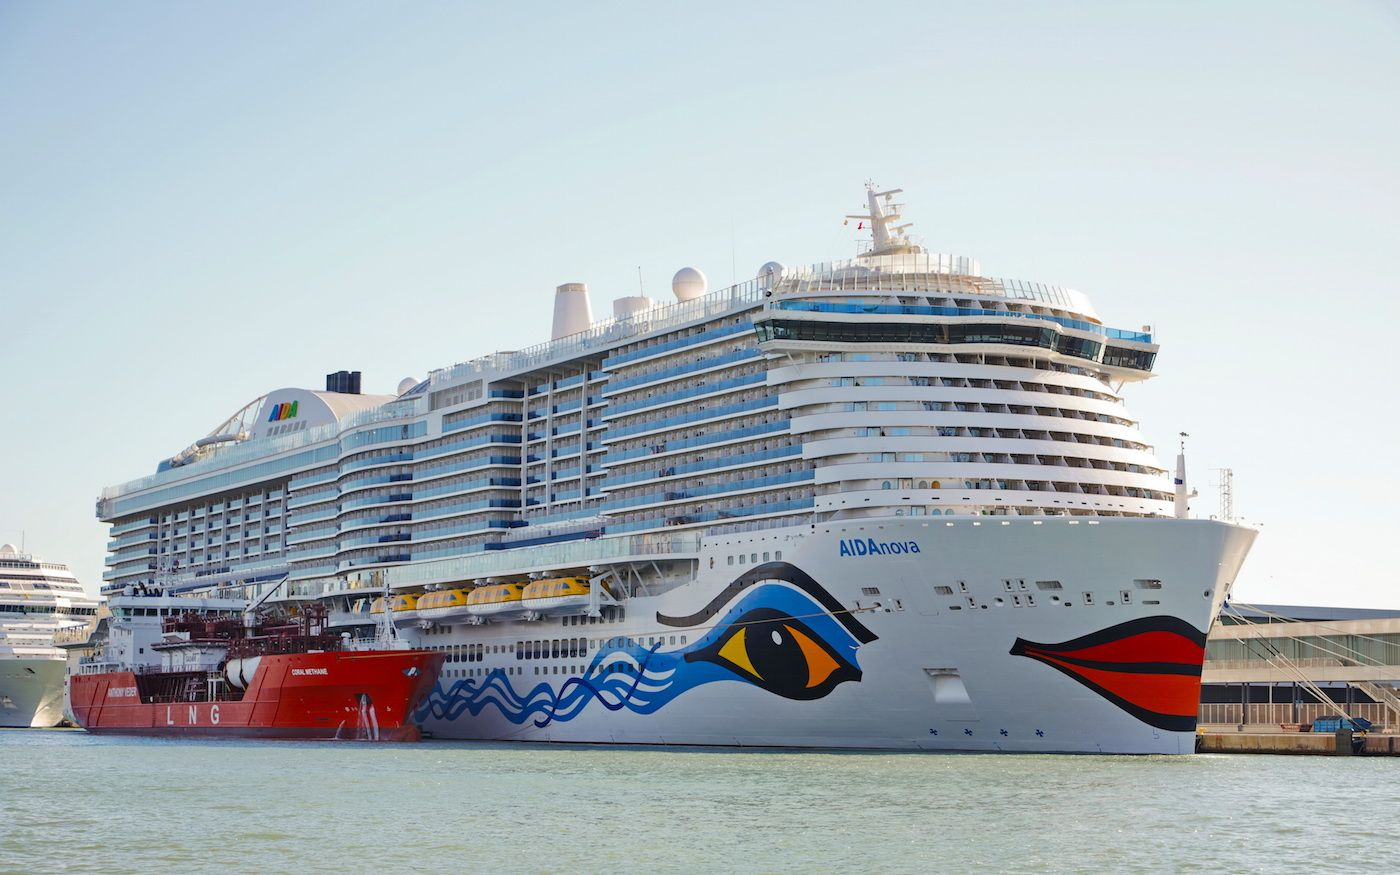 AIDAnova (Carnival Corporation) is the first cruise in the world powered with LNG.